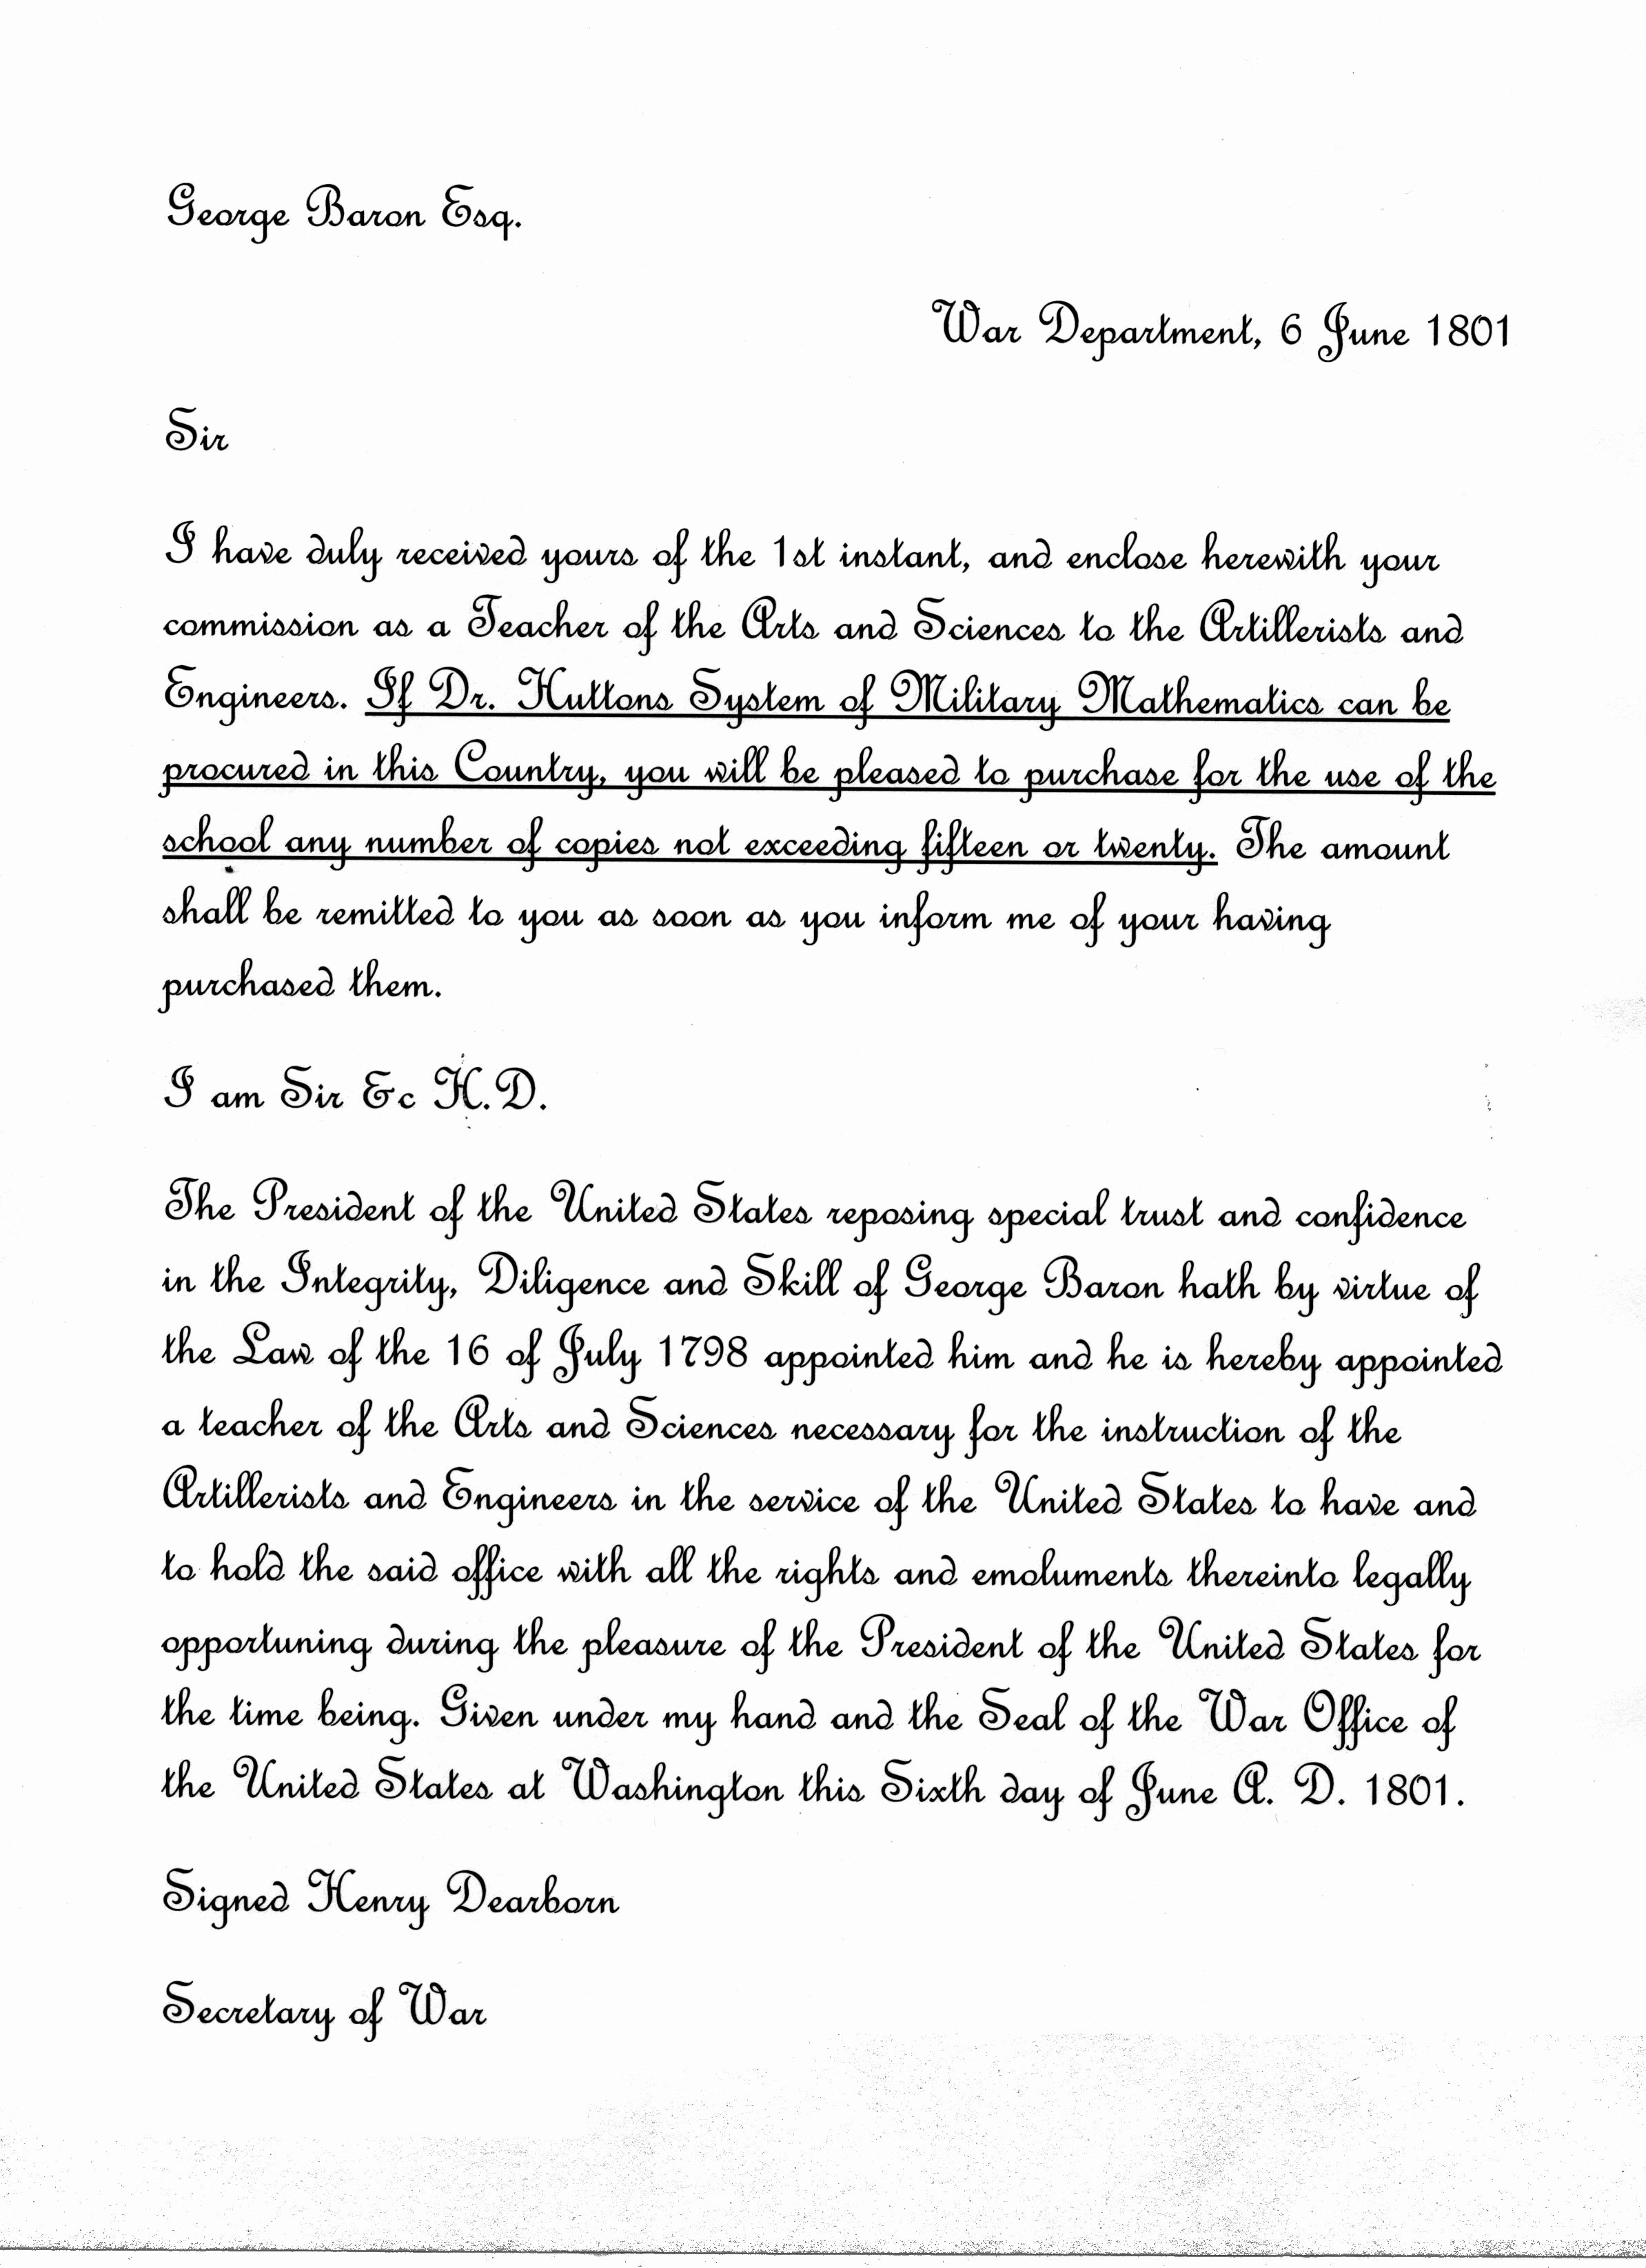 West Point Letter Of Recommendation Inspirational Mathematics Education at West Point the First Hundred Years